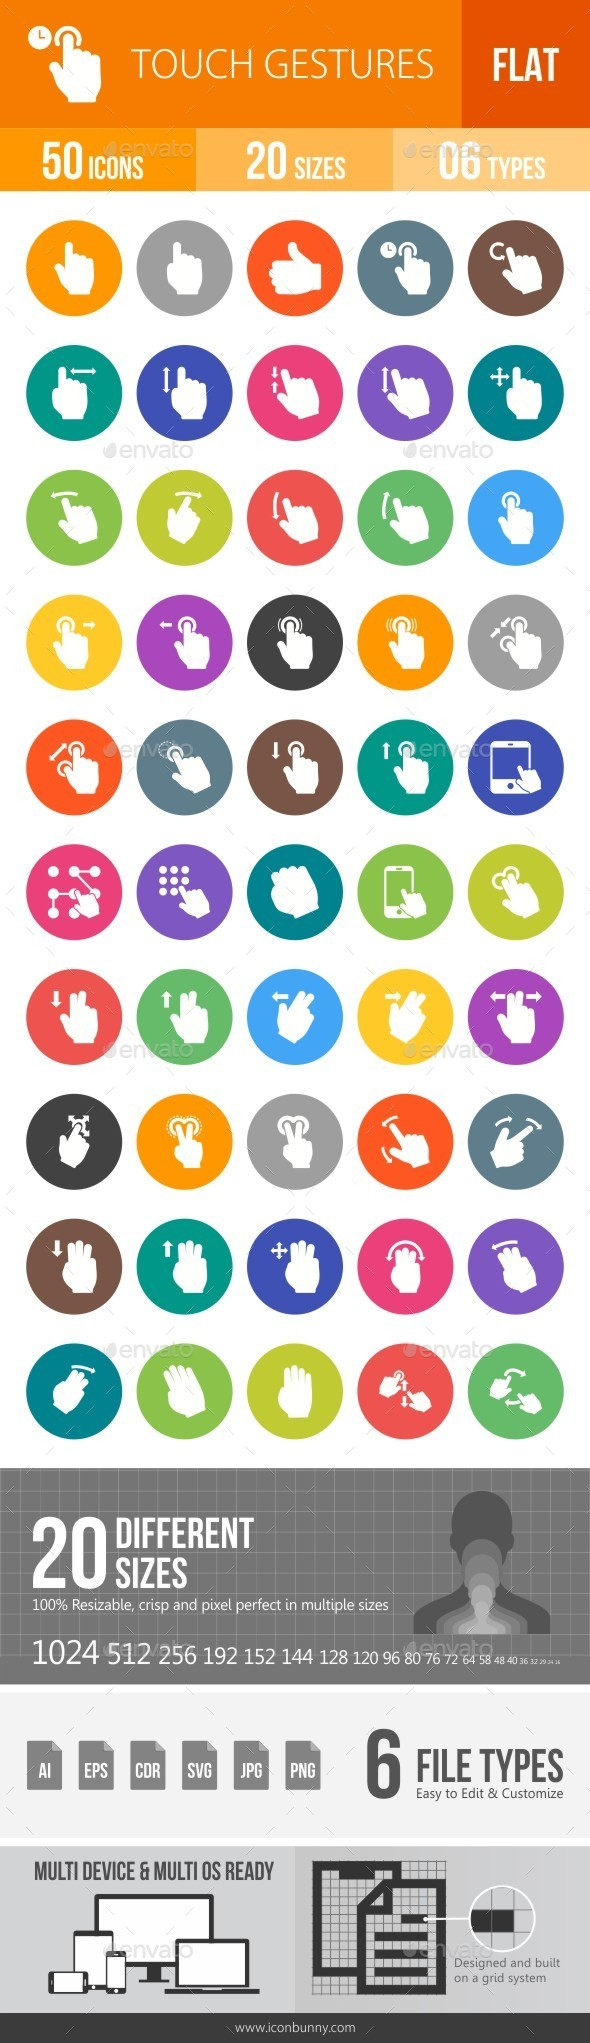 Touch Gestures Flat Round Icons - Icons